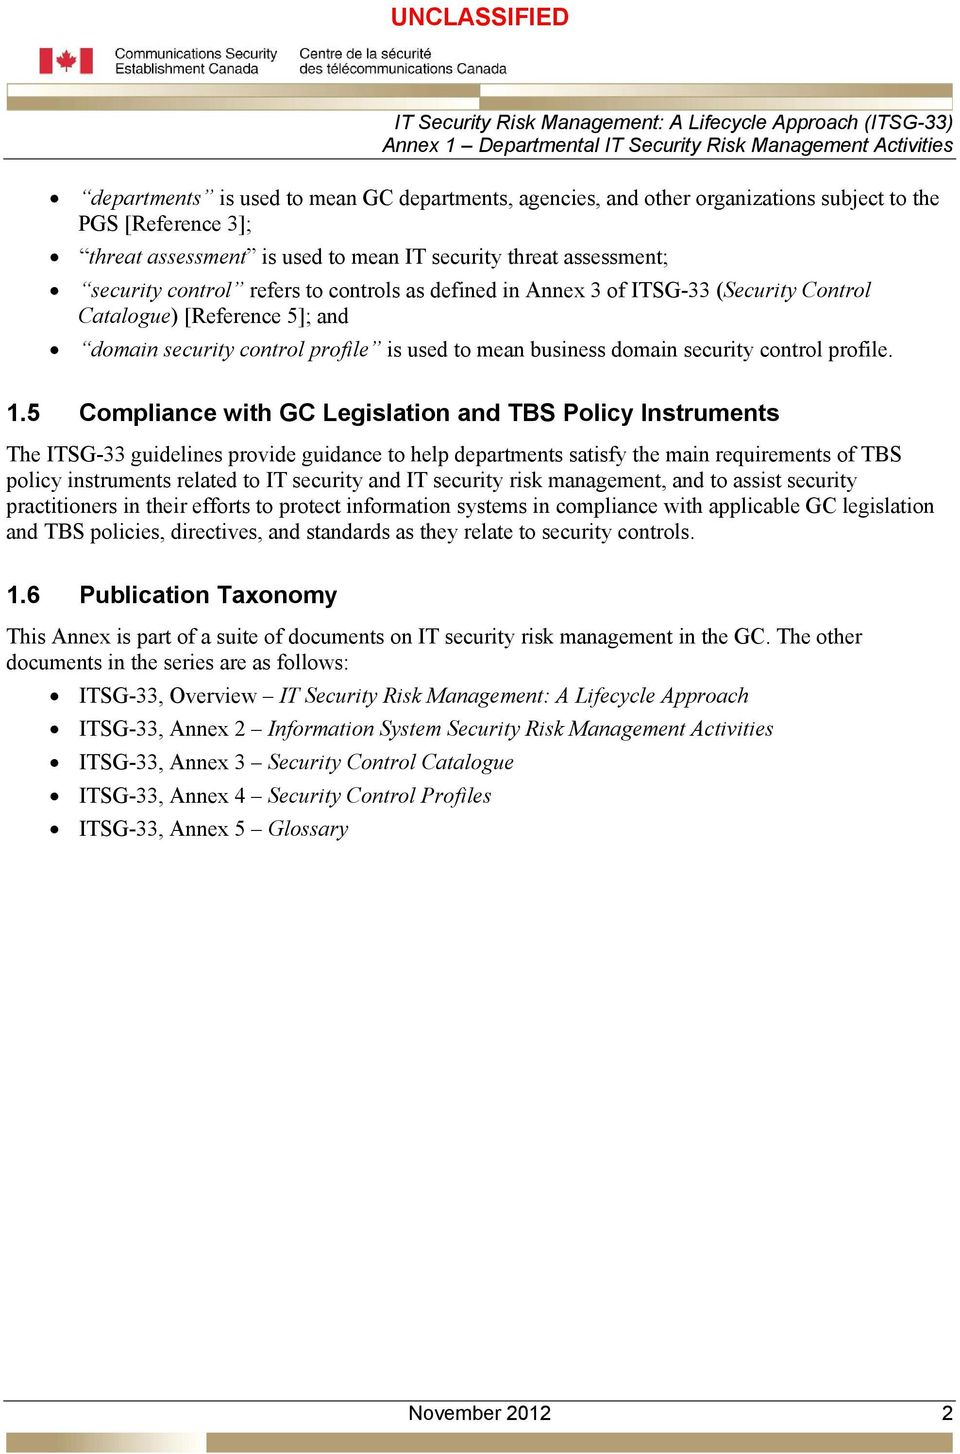 5 Compliance with GC Legislation and TBS Policy Instruments The ITSG-33 guidelines provide guidance to help departments satisfy the main requirements of TBS policy instruments related to IT security